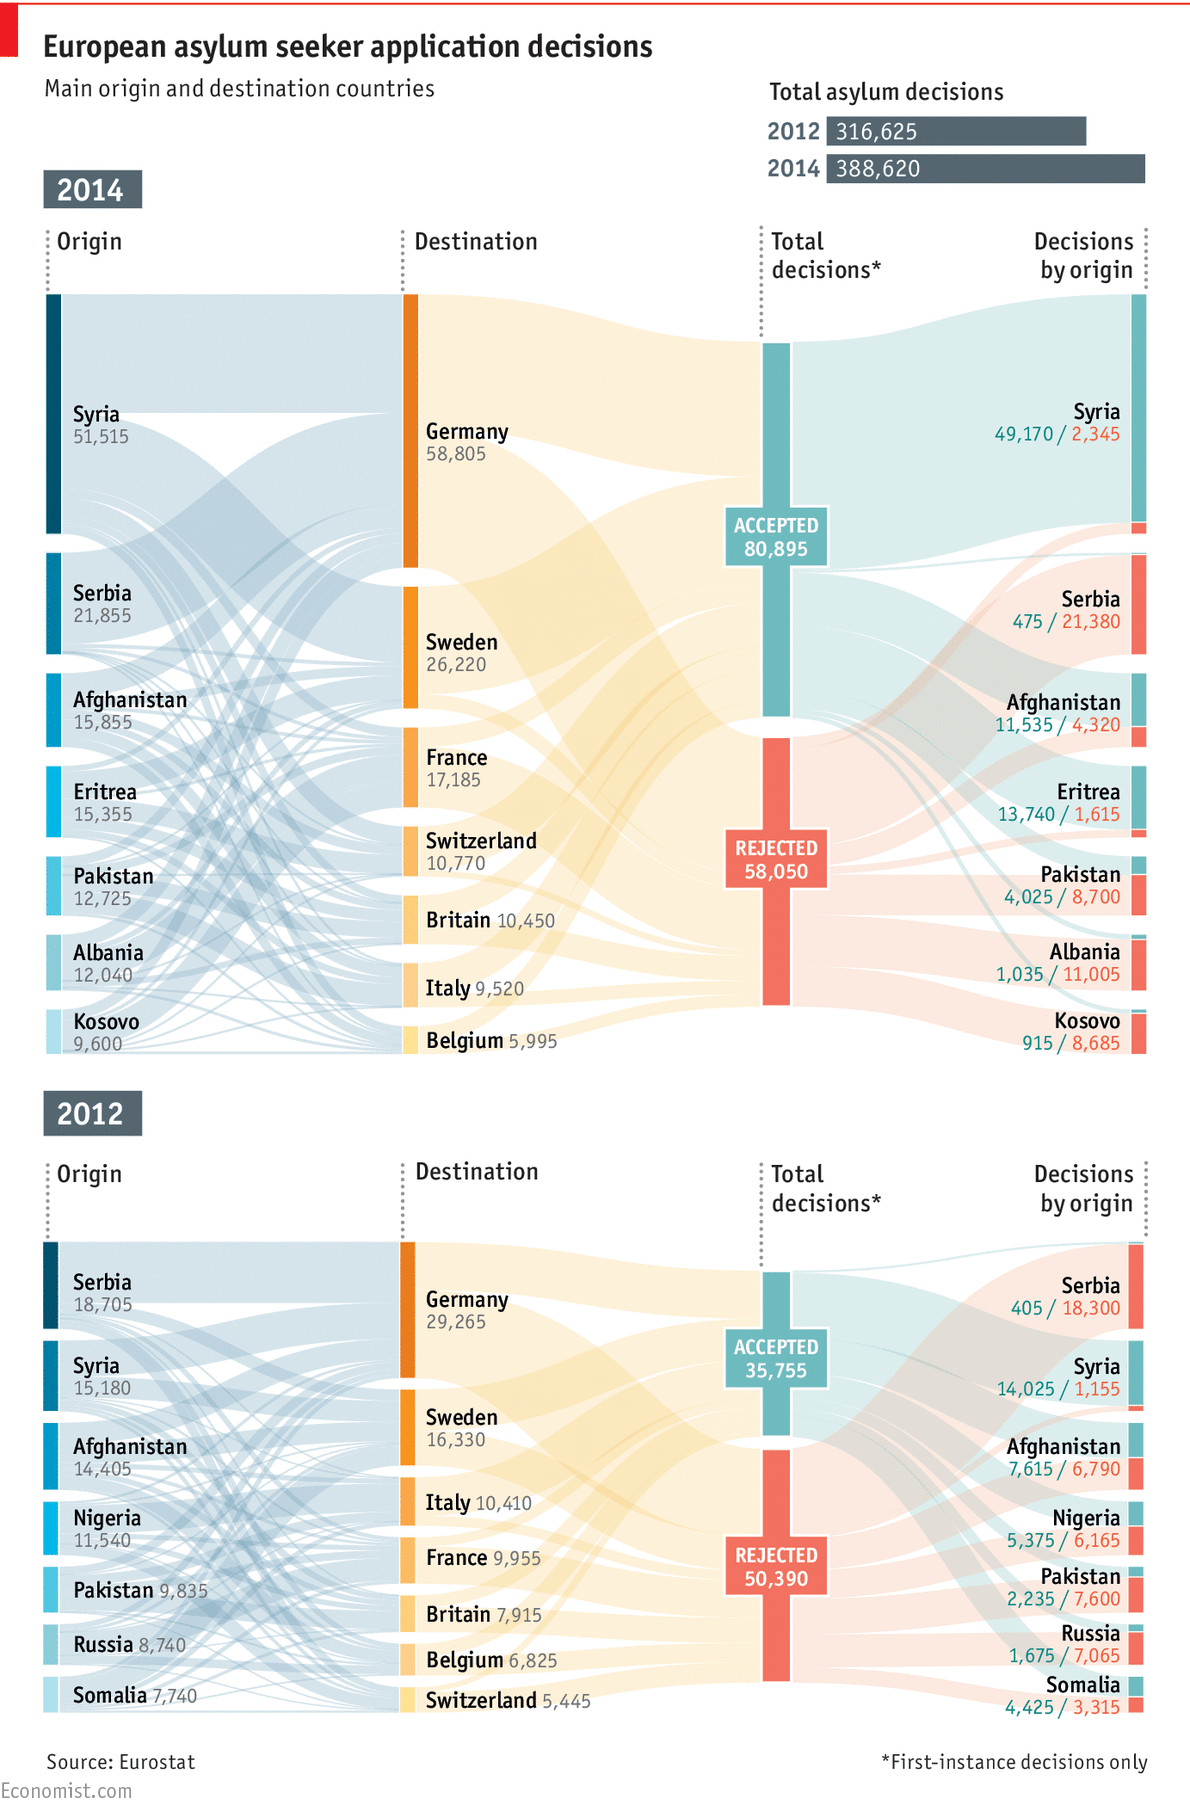 how to do a sankey diagram ryobi ss30 fuel line seeking safety infographics pinterest data visualization daily chart european asylum seeker application decisions 12 may 2015 by the economist more graphs in article refugee